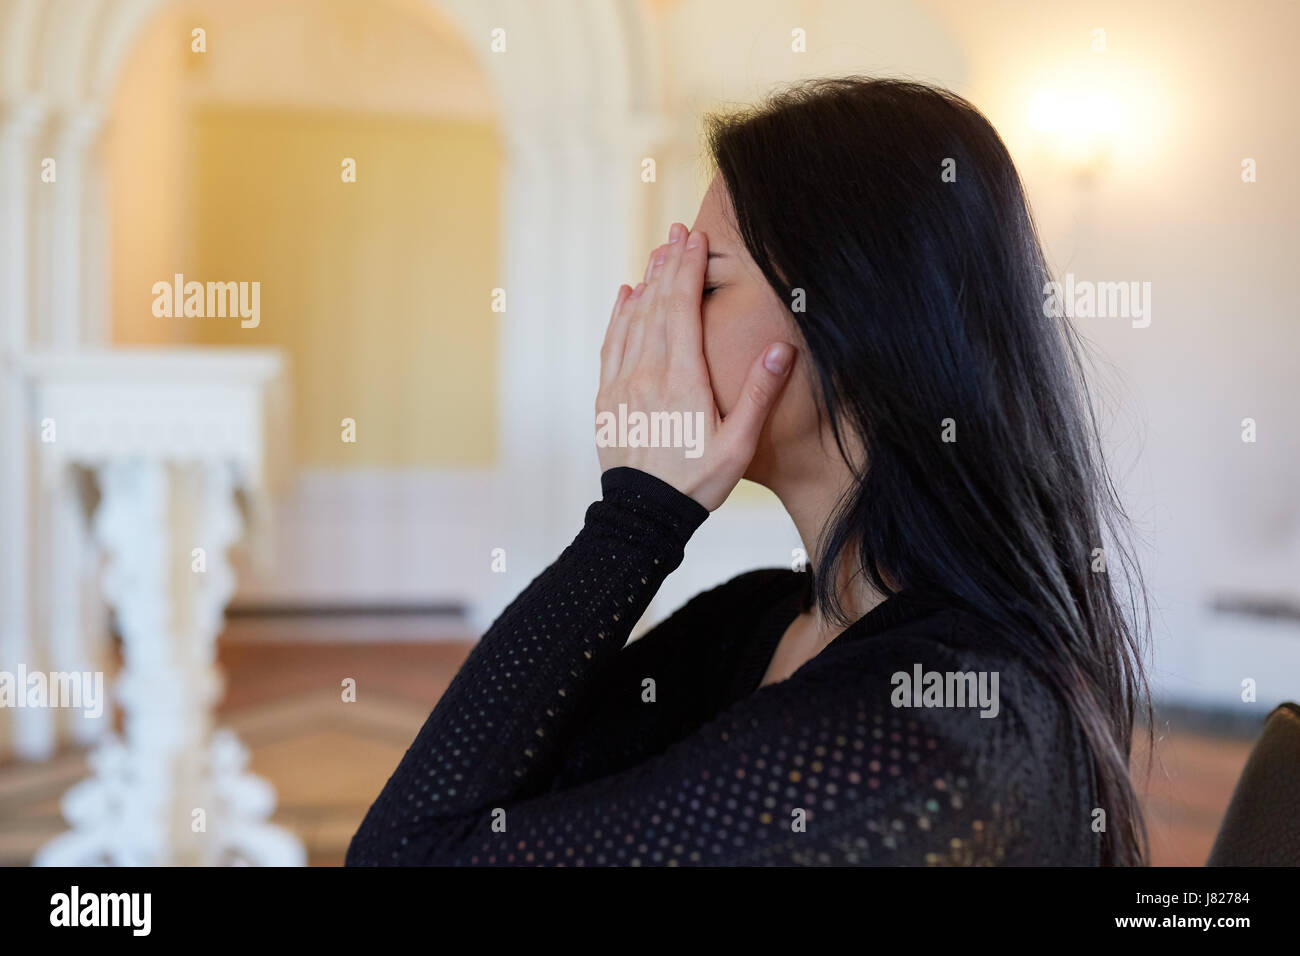 unhappy crying woman at funeral in church - Stock Image